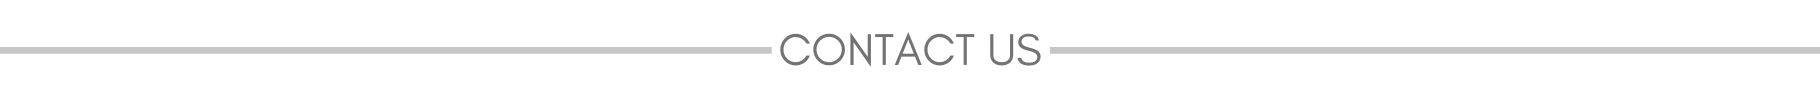 banner stating contact us